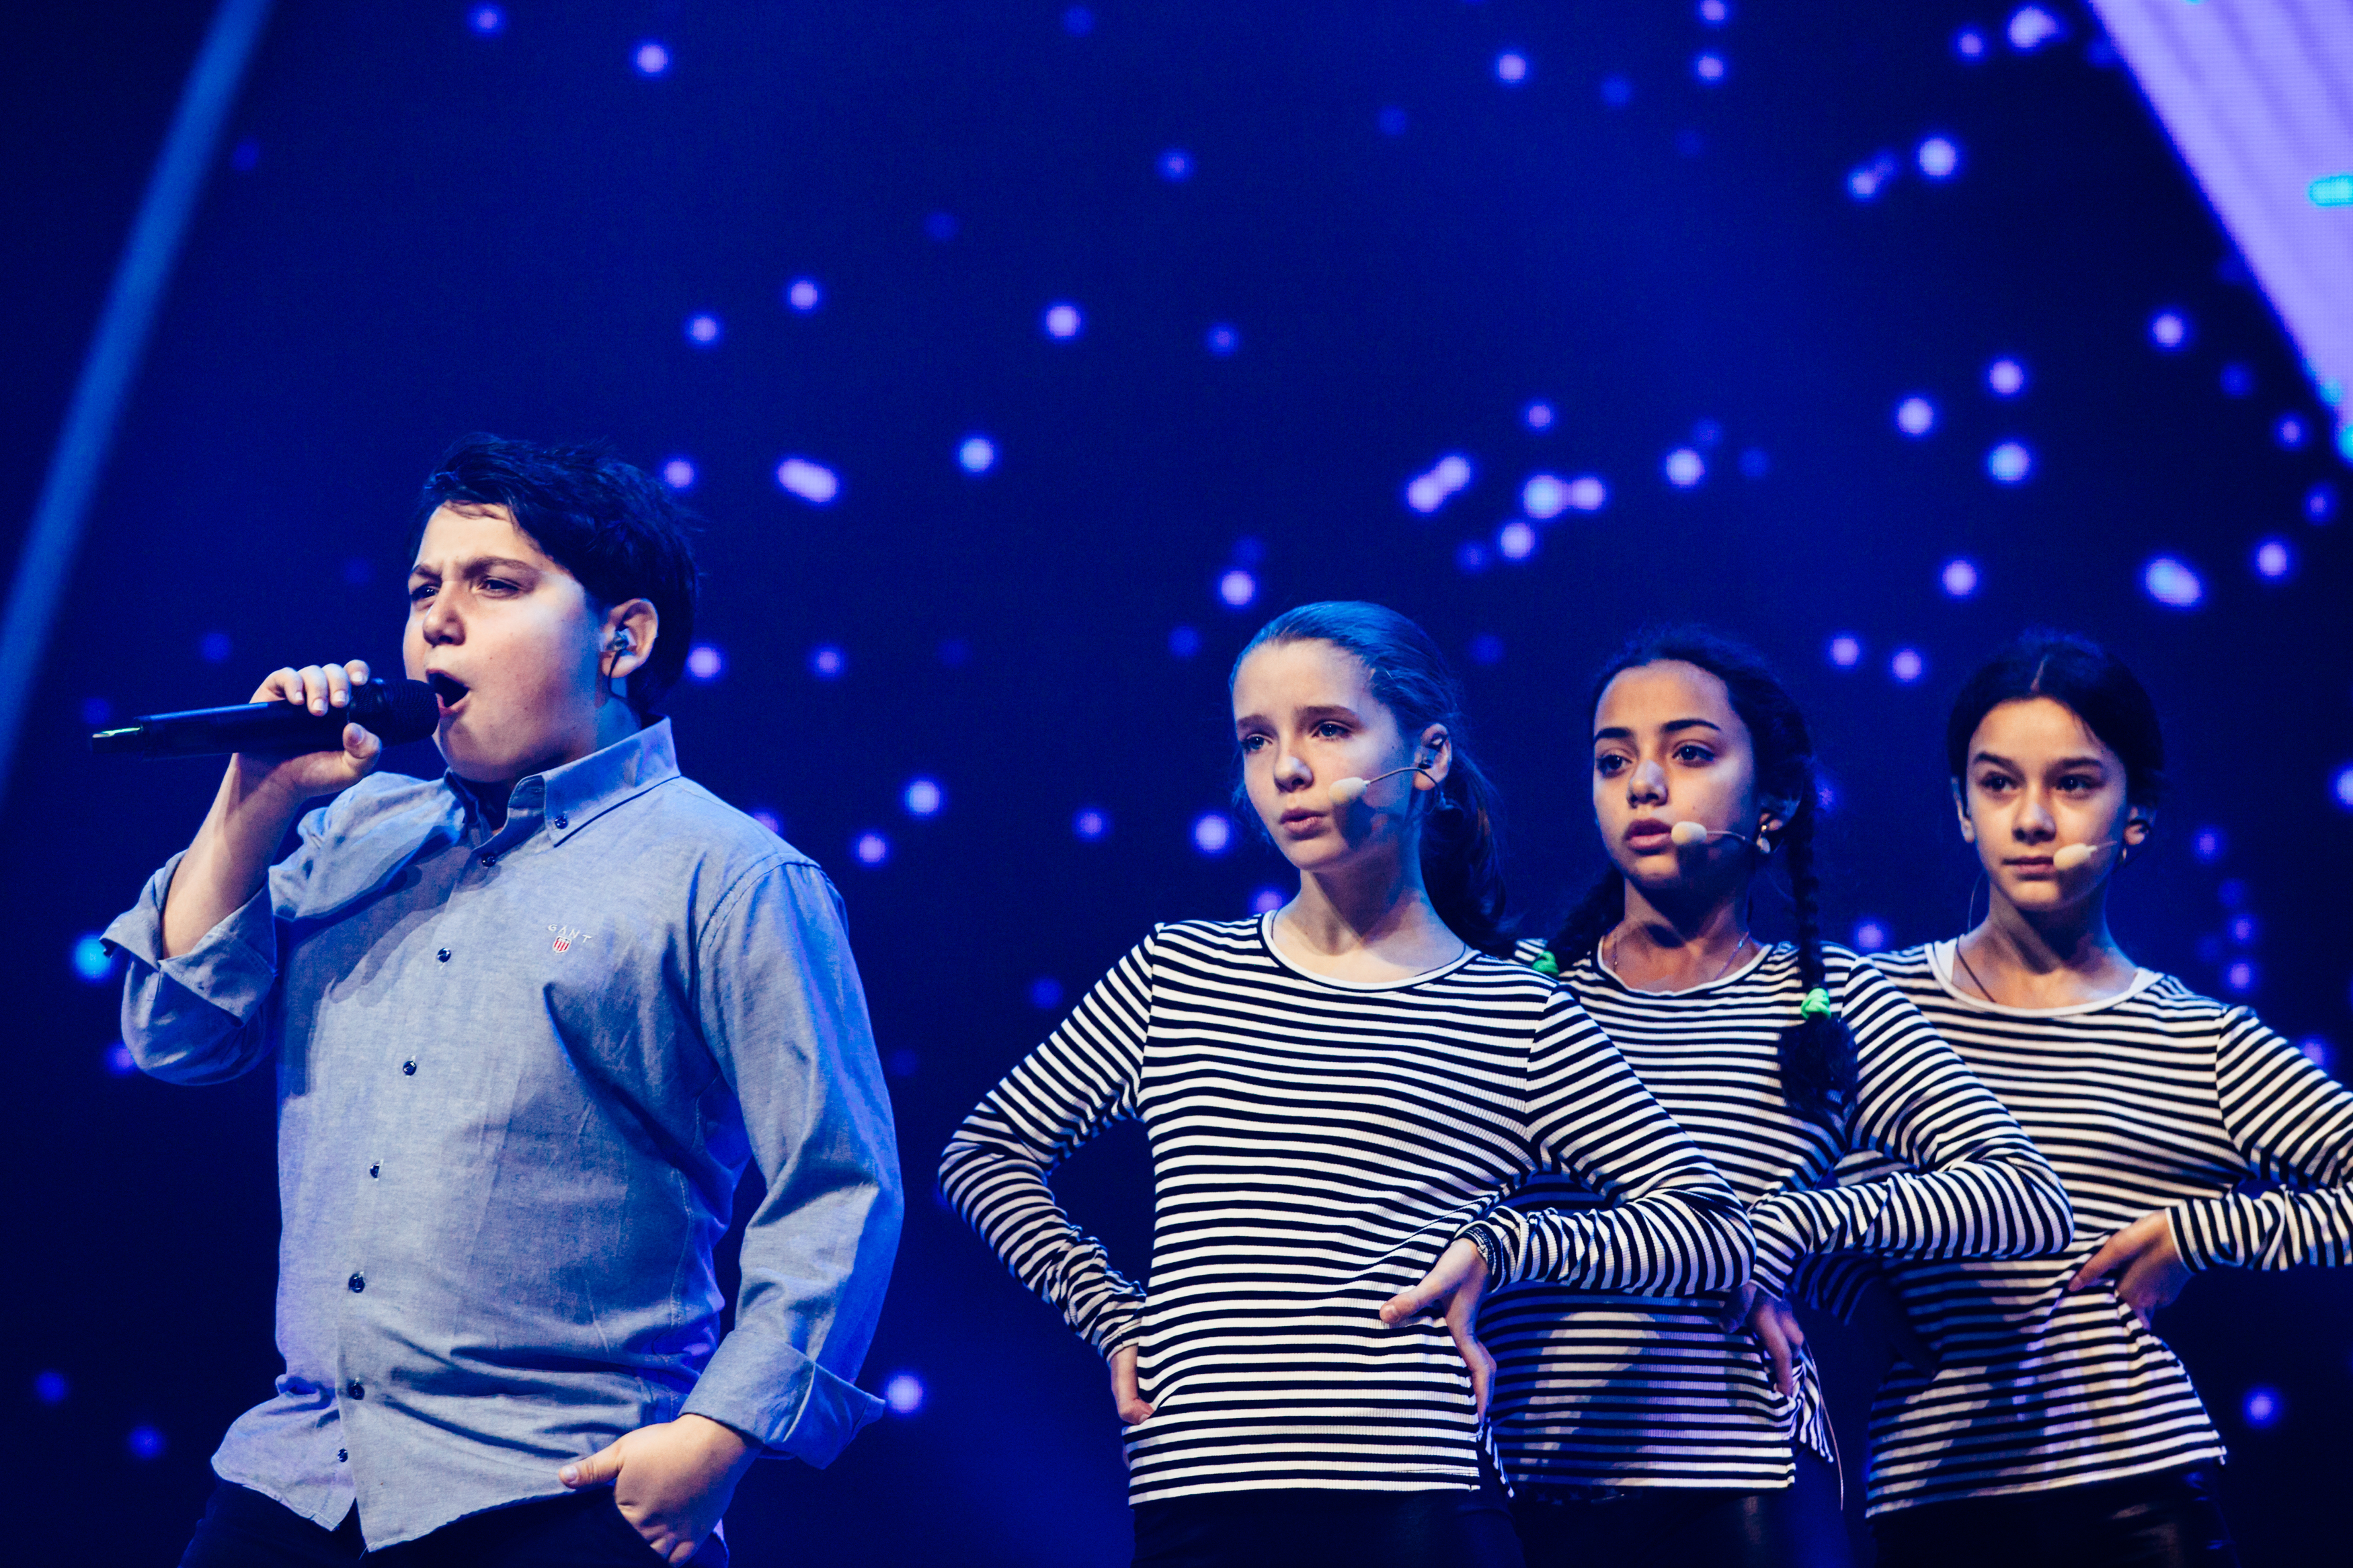 The Virus at Junior Eurovision 2015. Image source: EBU